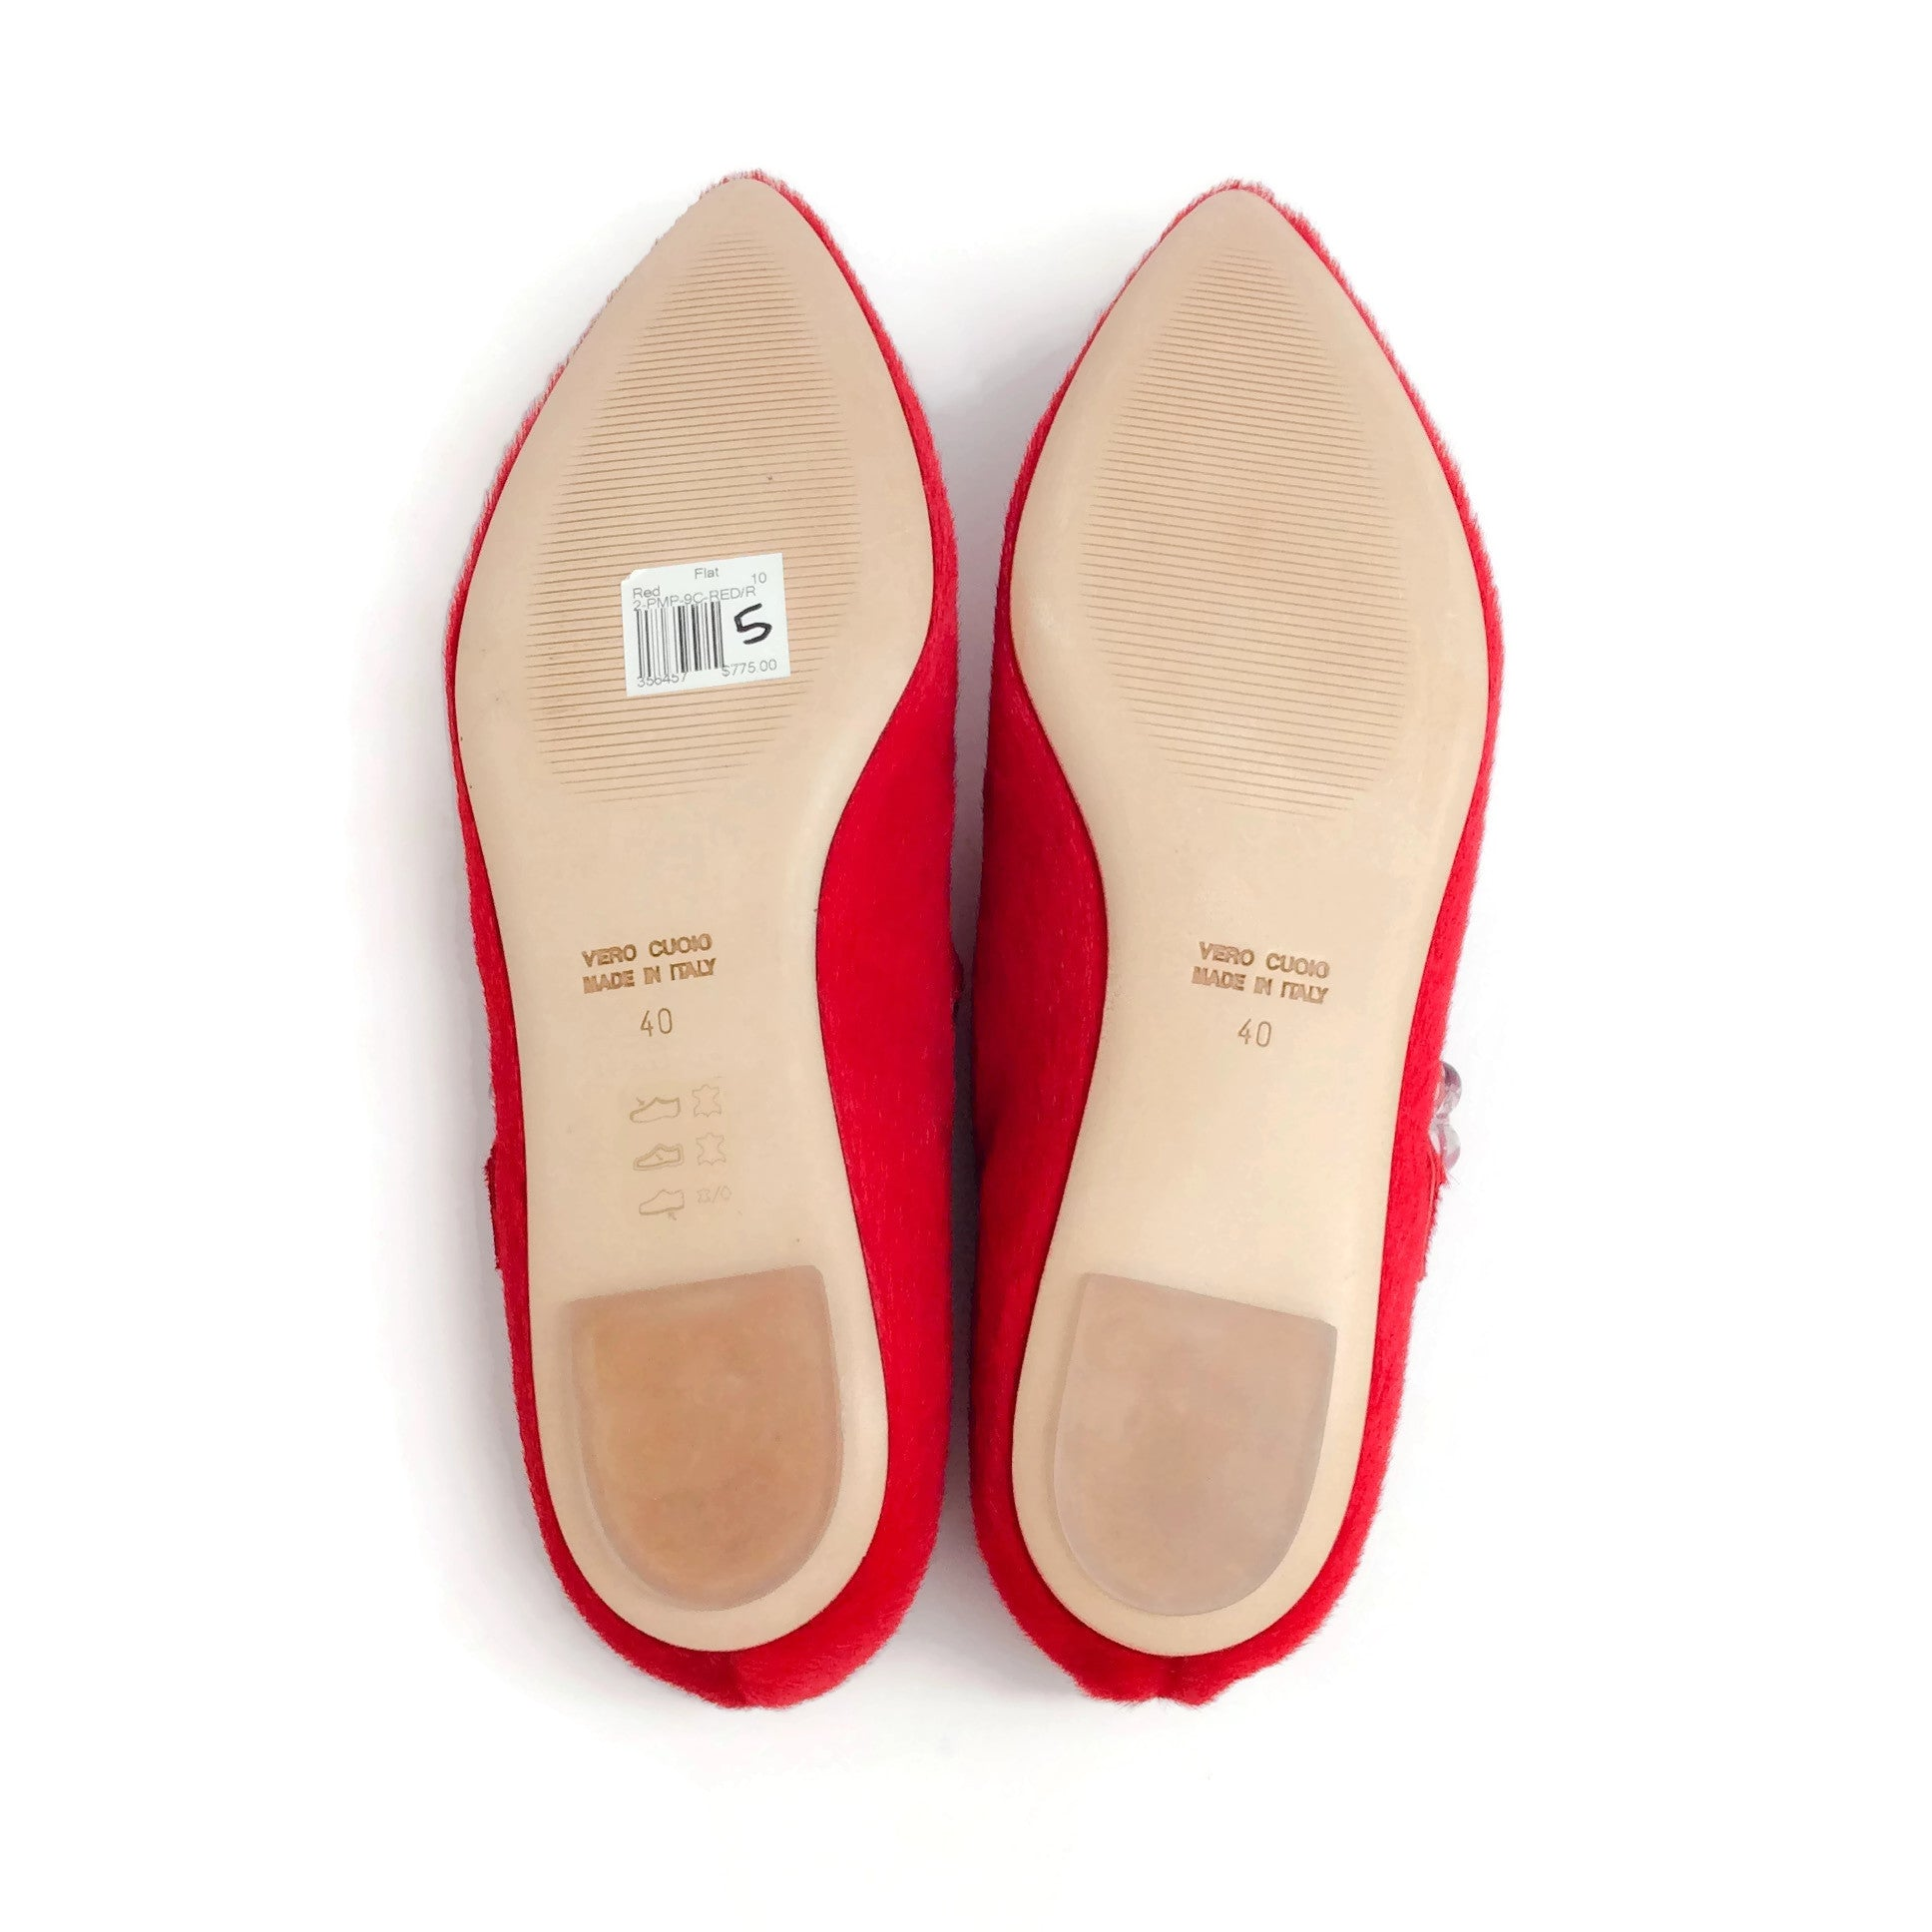 Simone Rocha Red Pony Criss Cross Ballet Flats